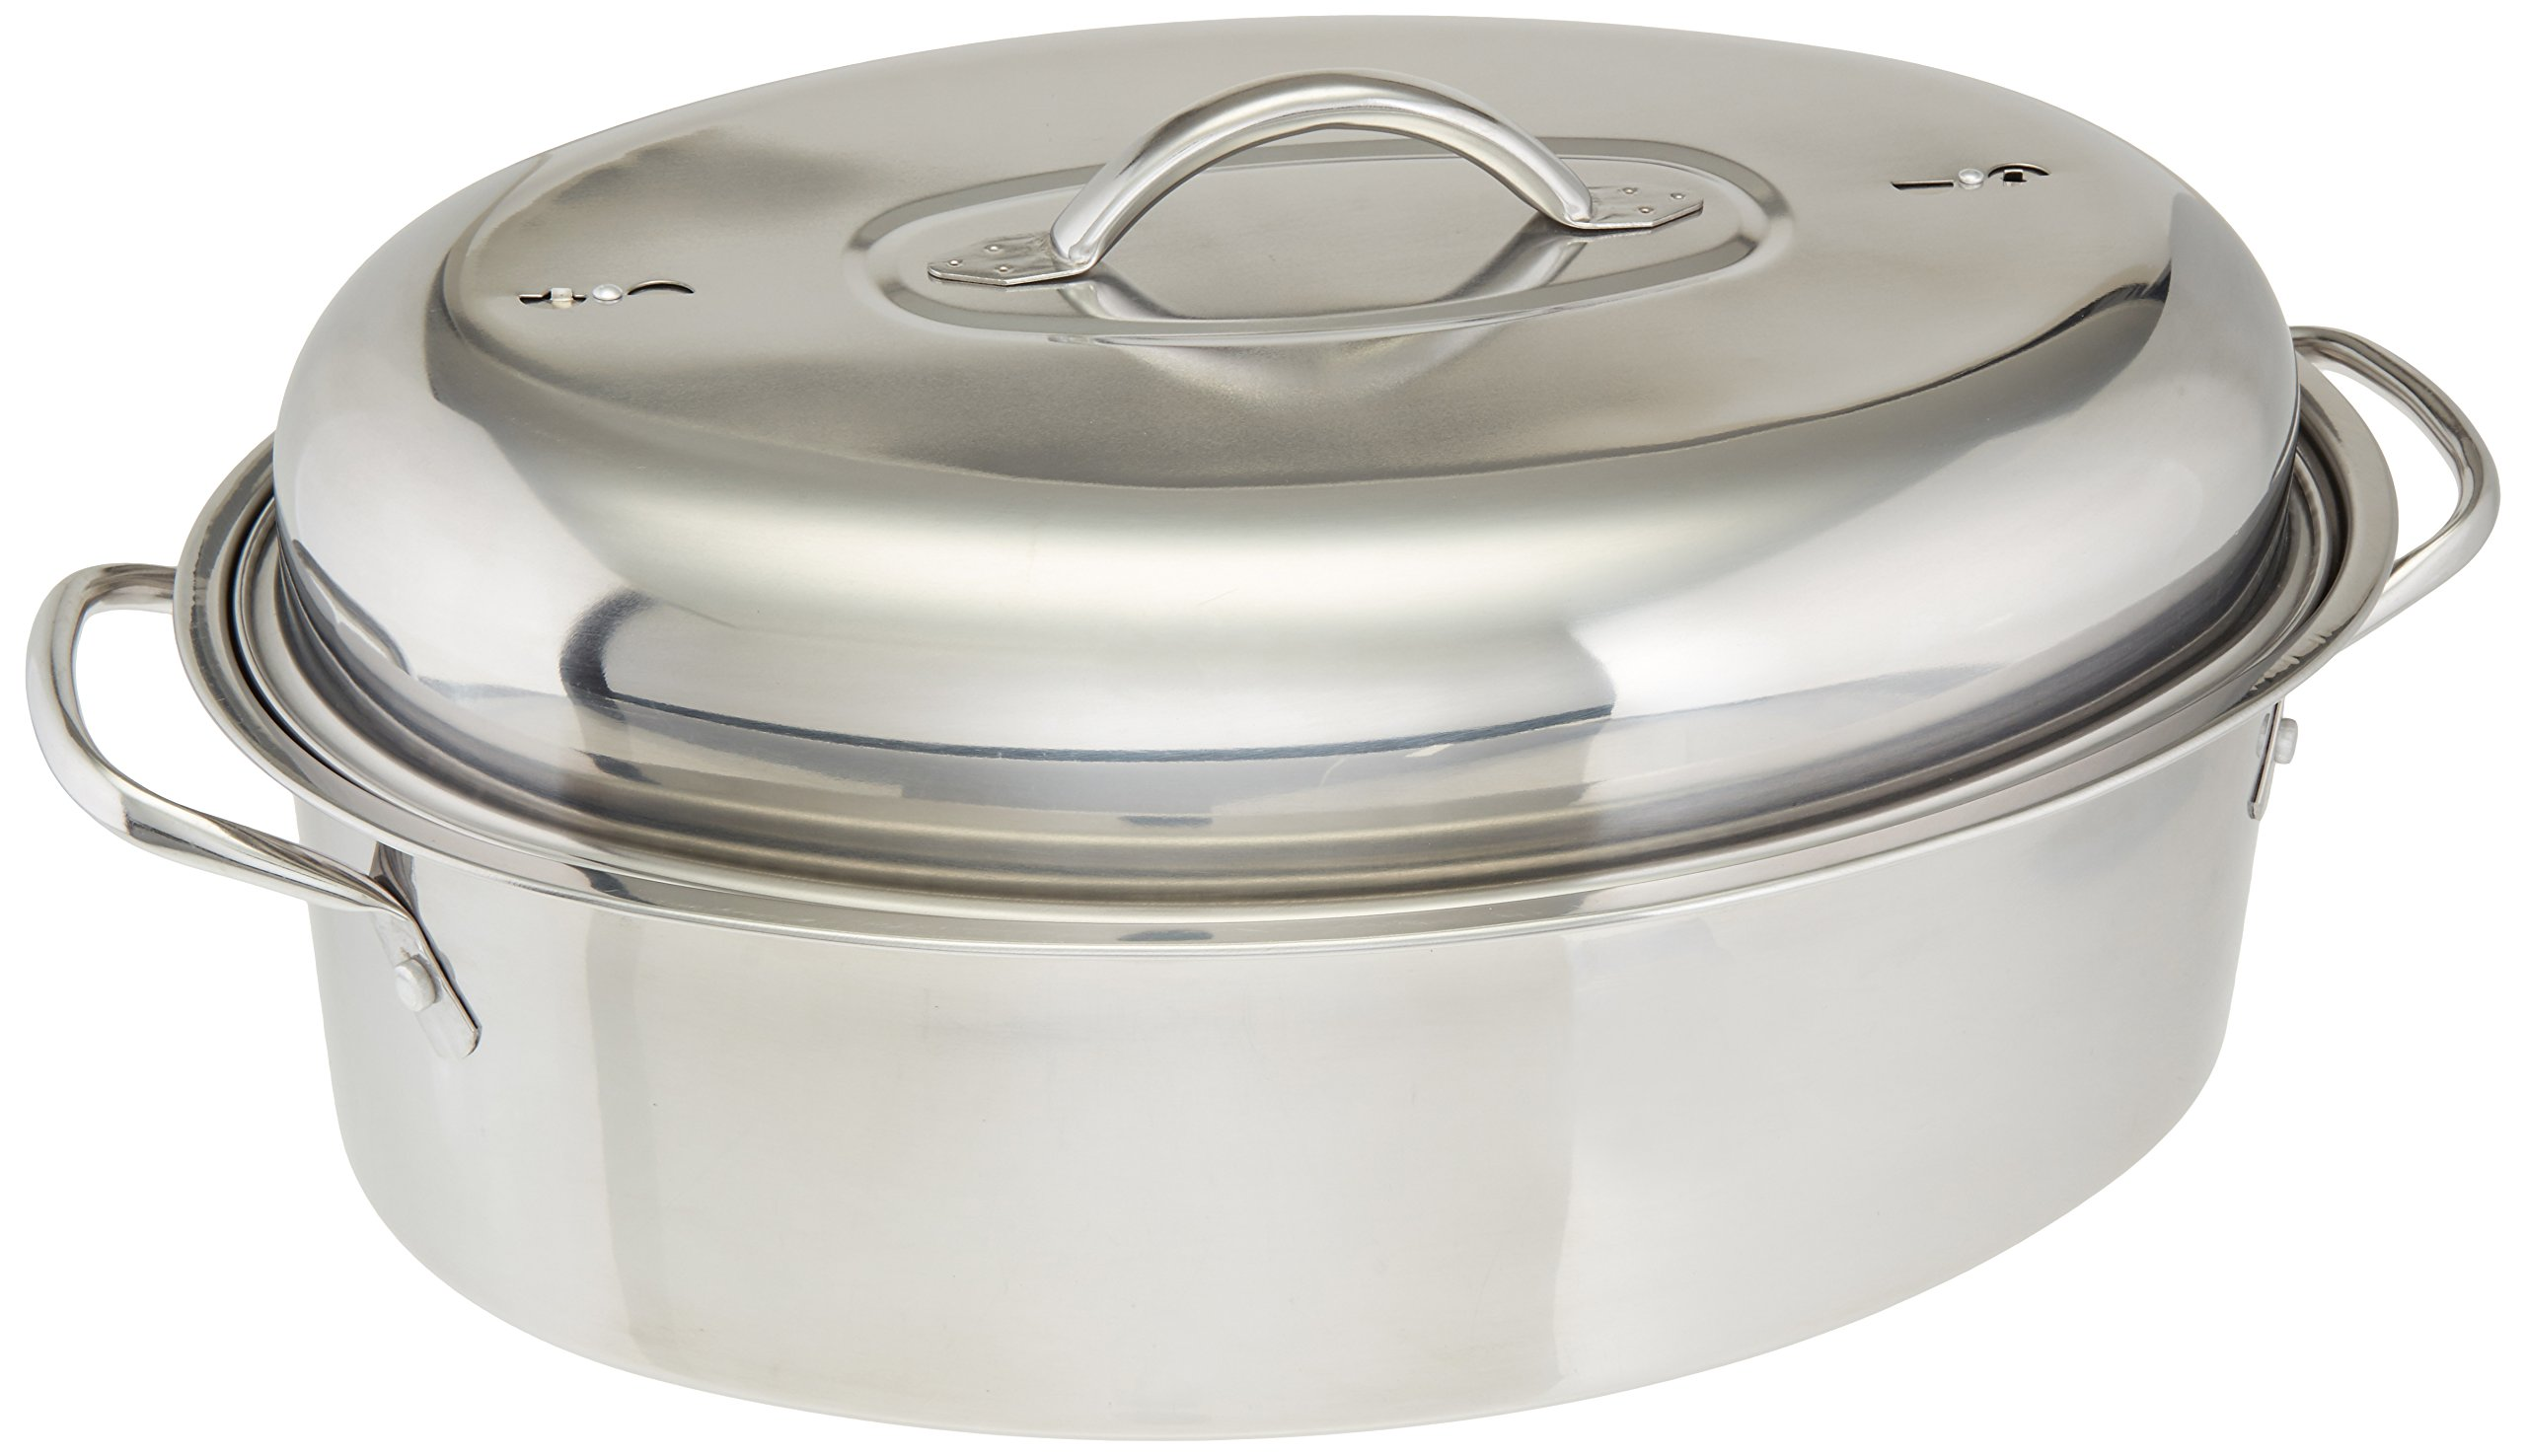 Cook Pro 574 All-in-1 Stainless High Dome Roaster and Fish Poacher, 23-Pound by Cook Pro